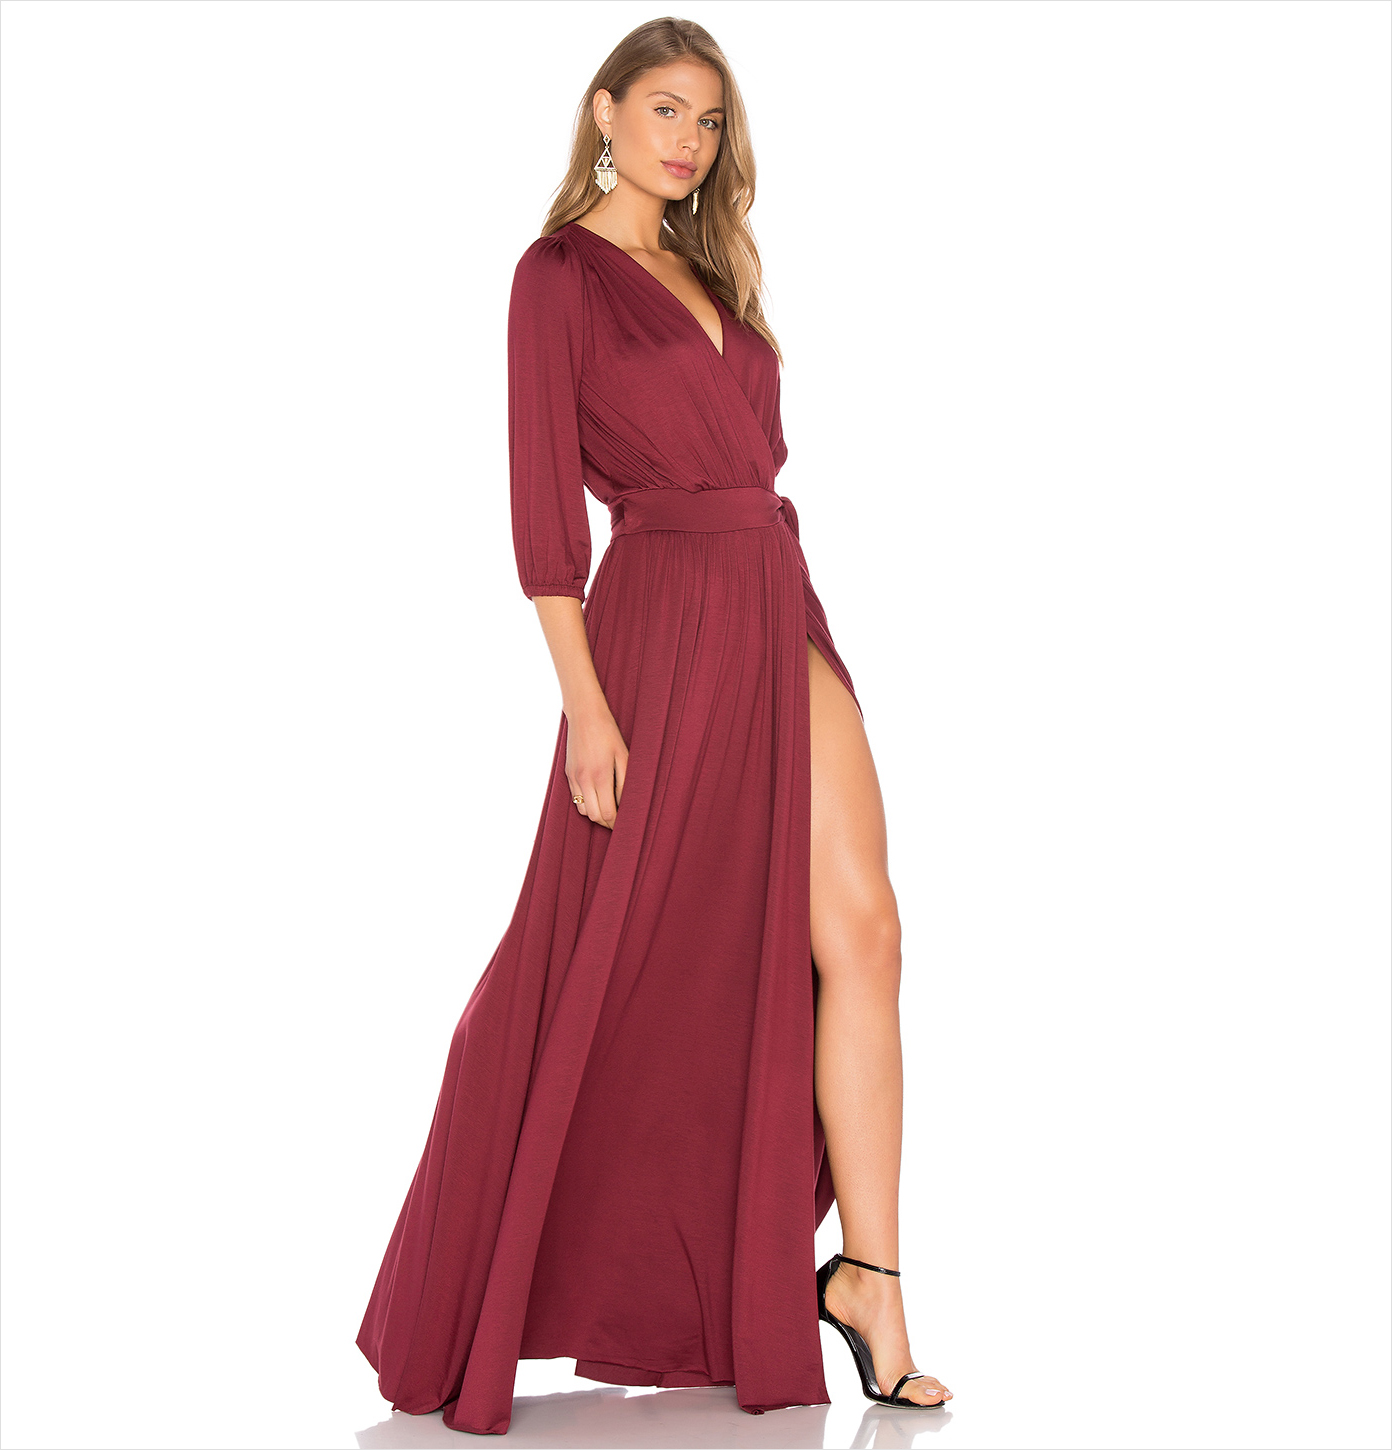 Wedding Guest Dress Ideas Long Sleeve Dresses , Inside Weddings